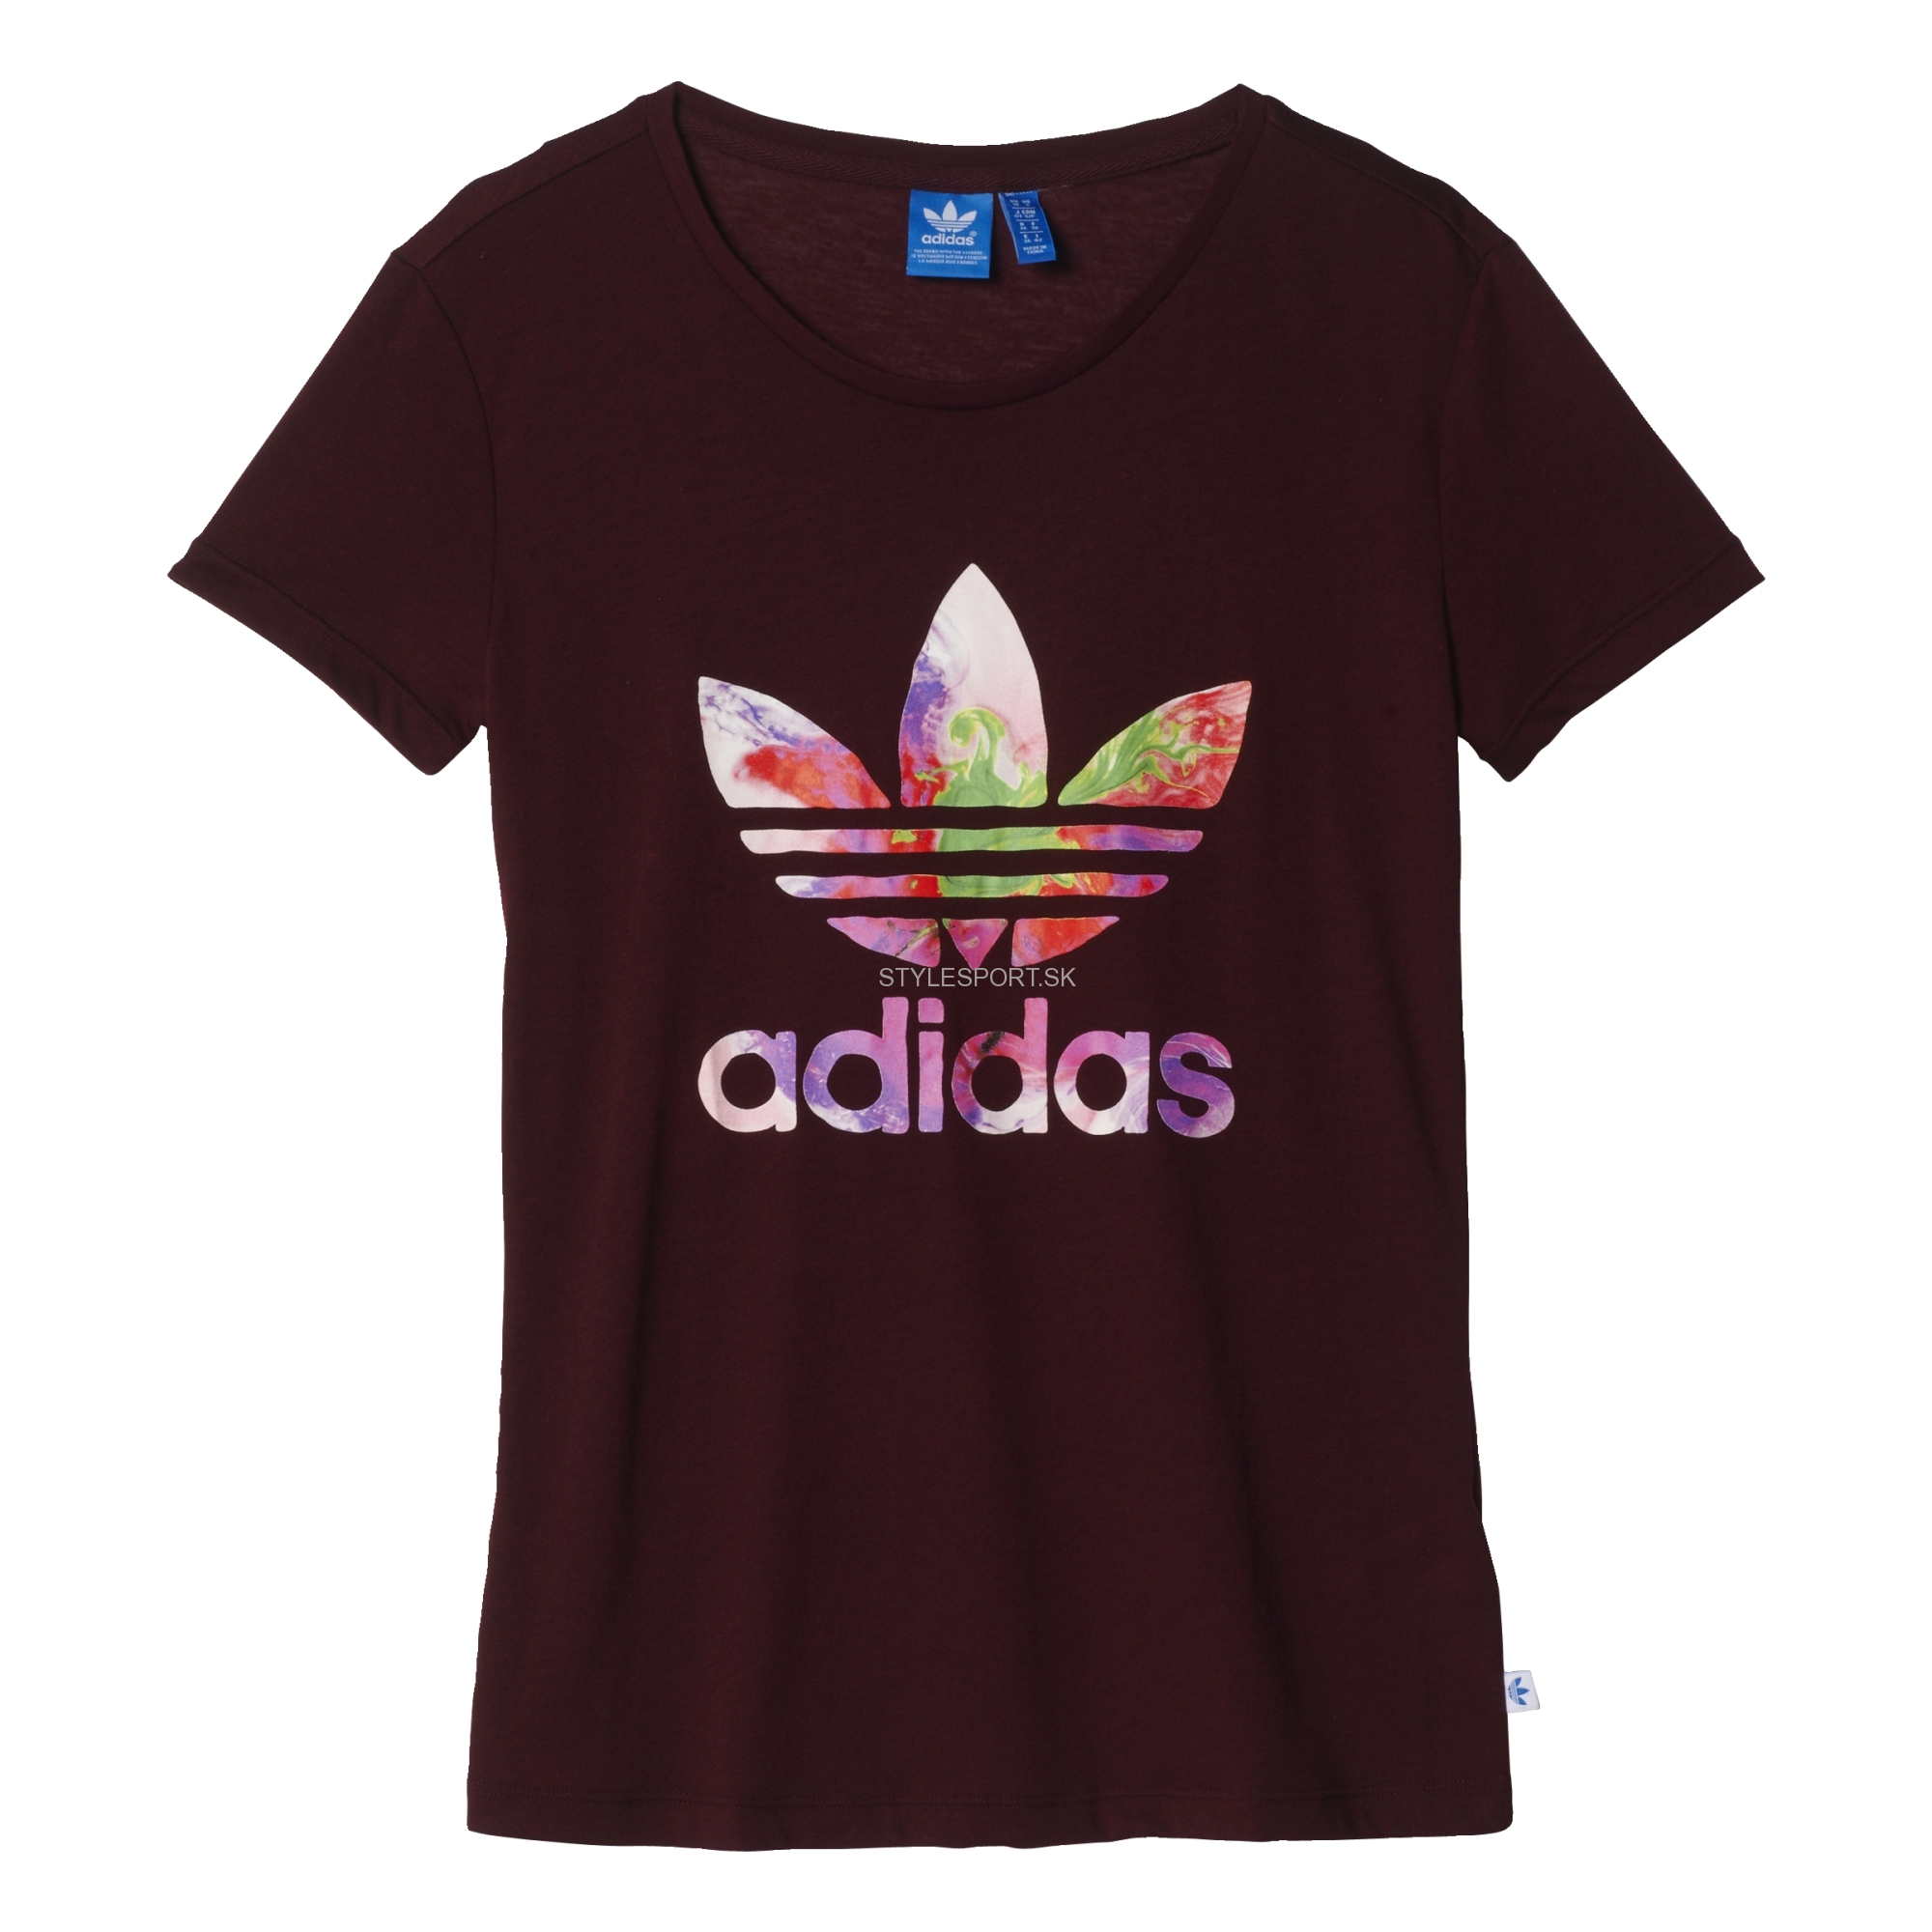 ee38c3686be4 Tričko ADIDAS ORIGINALS GRAPHIC TRF AY6663